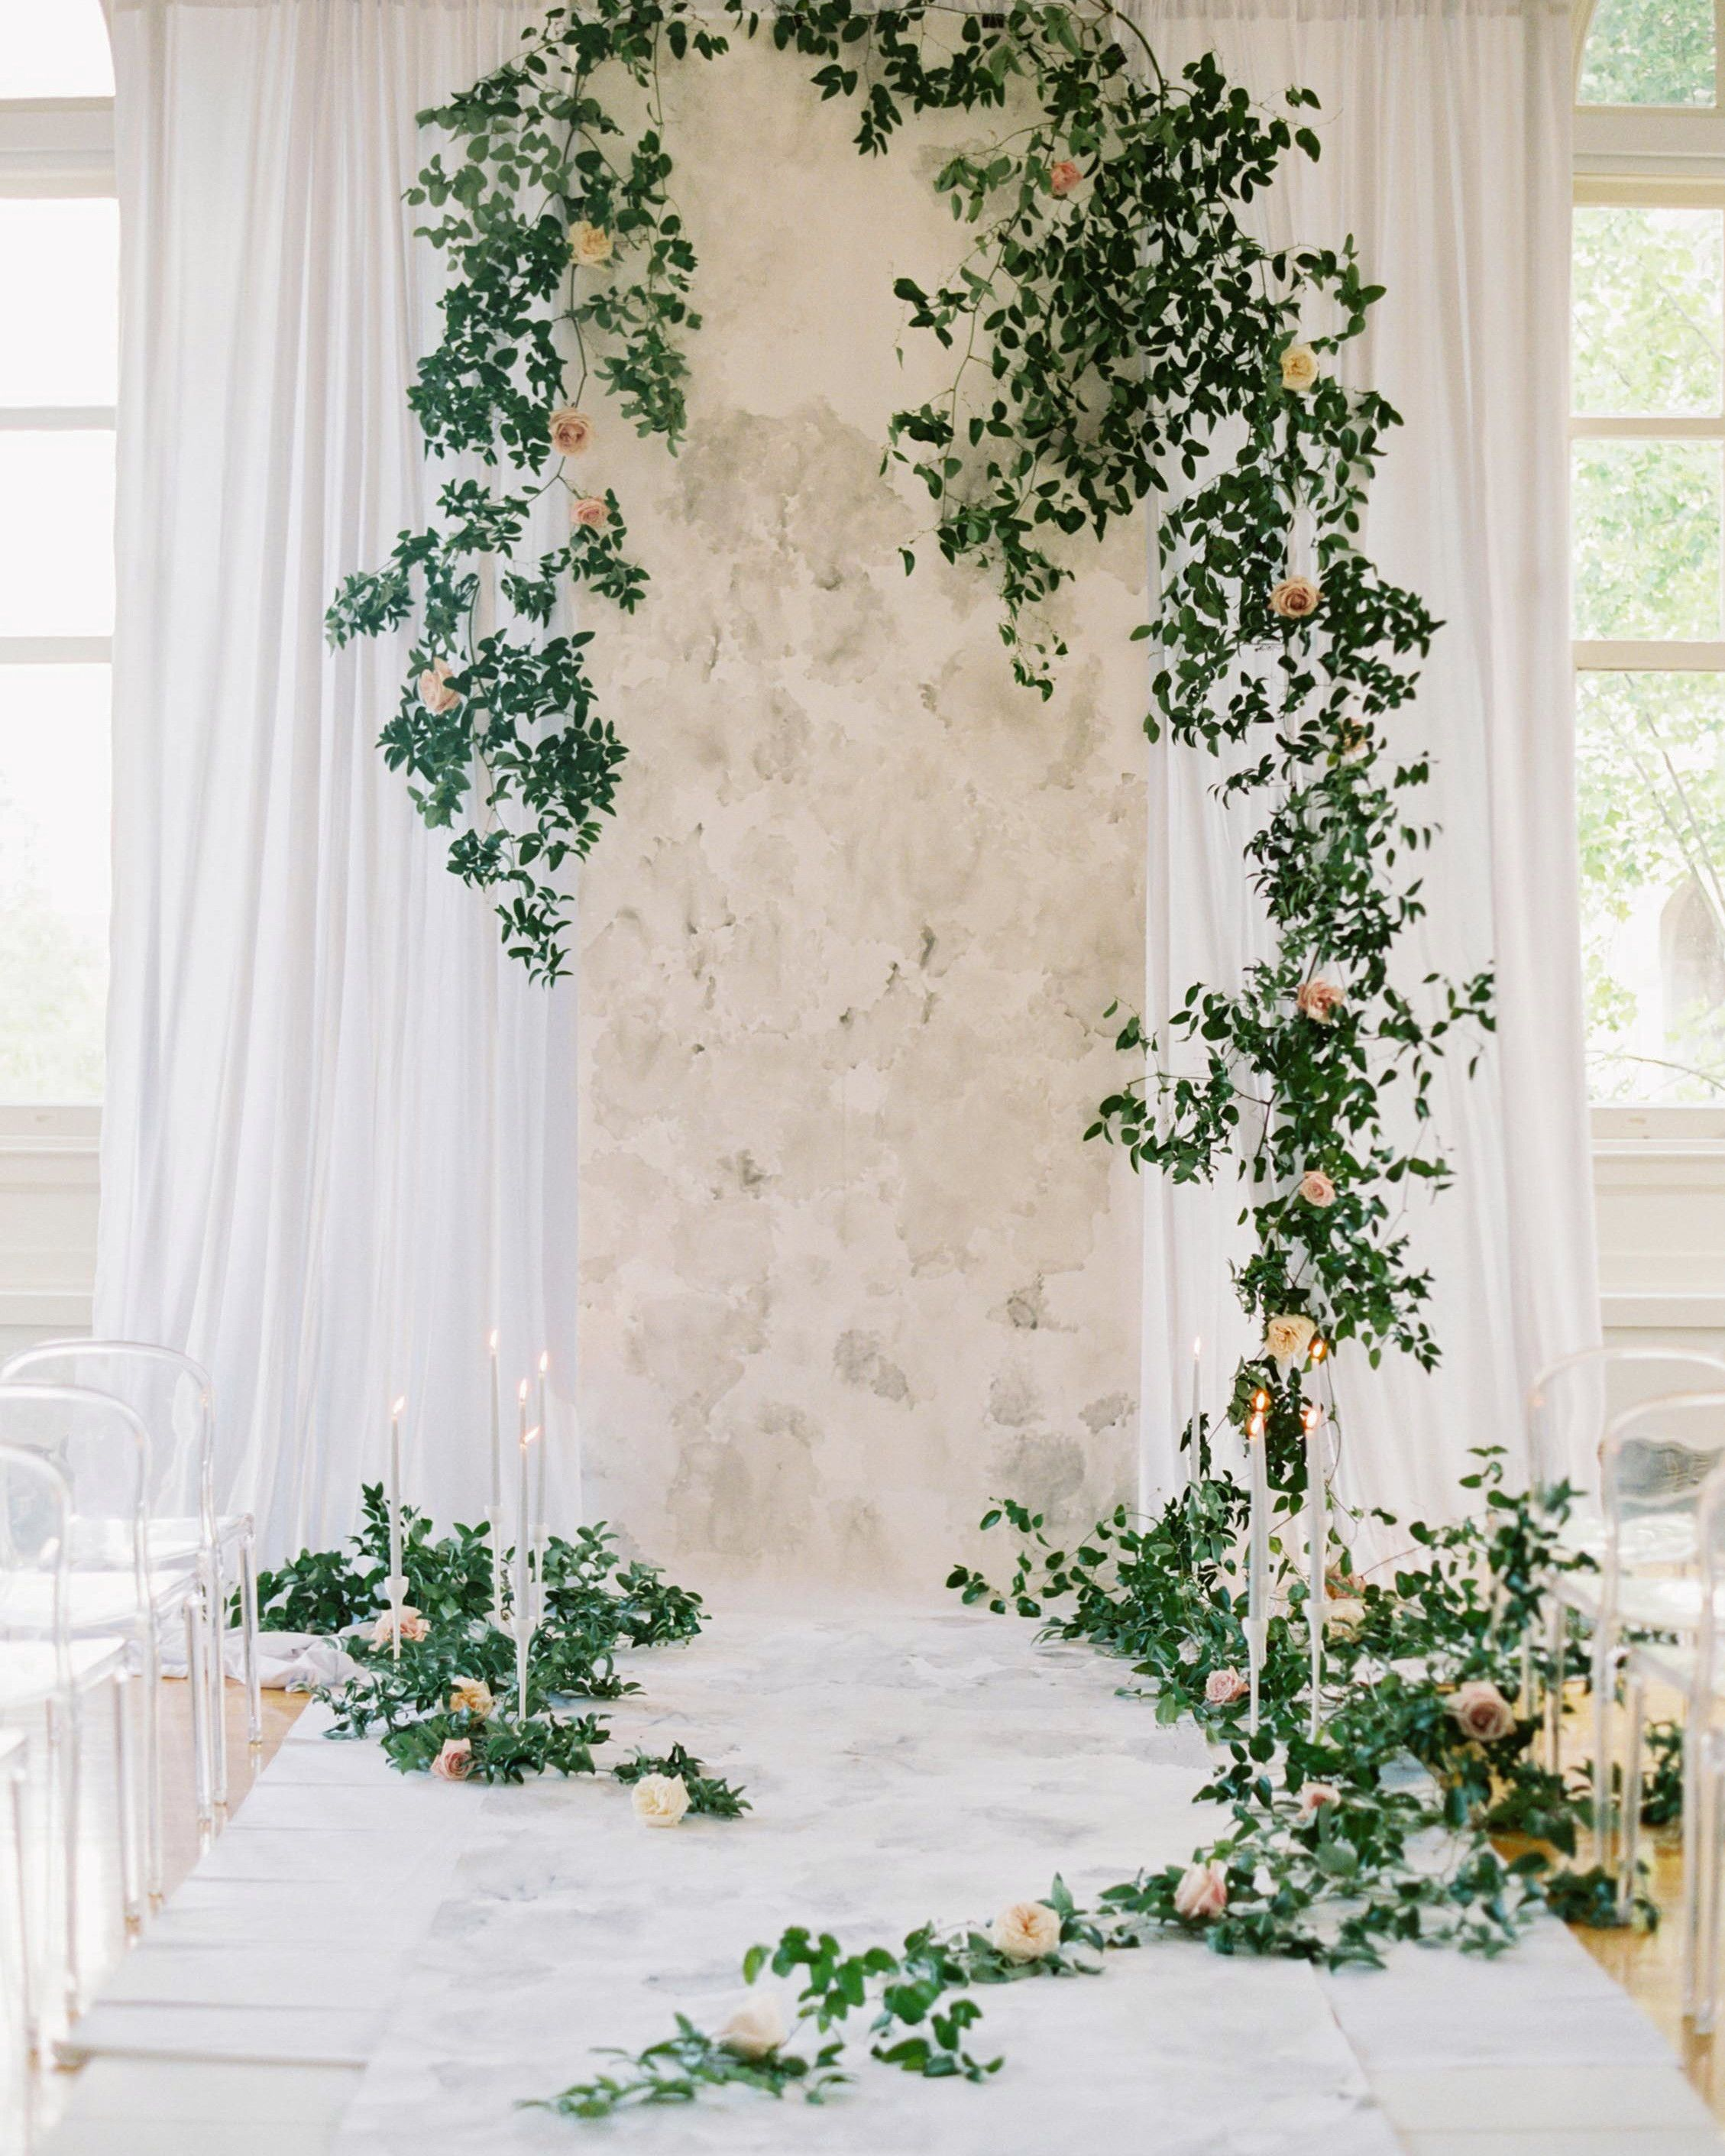 Creative Wedding Backdrop Ideas To Consider For Your Own Ceremony Wedding Ceremony Decorations Wedding Ceremony Backdrop Indoor Wedding Ceremonies